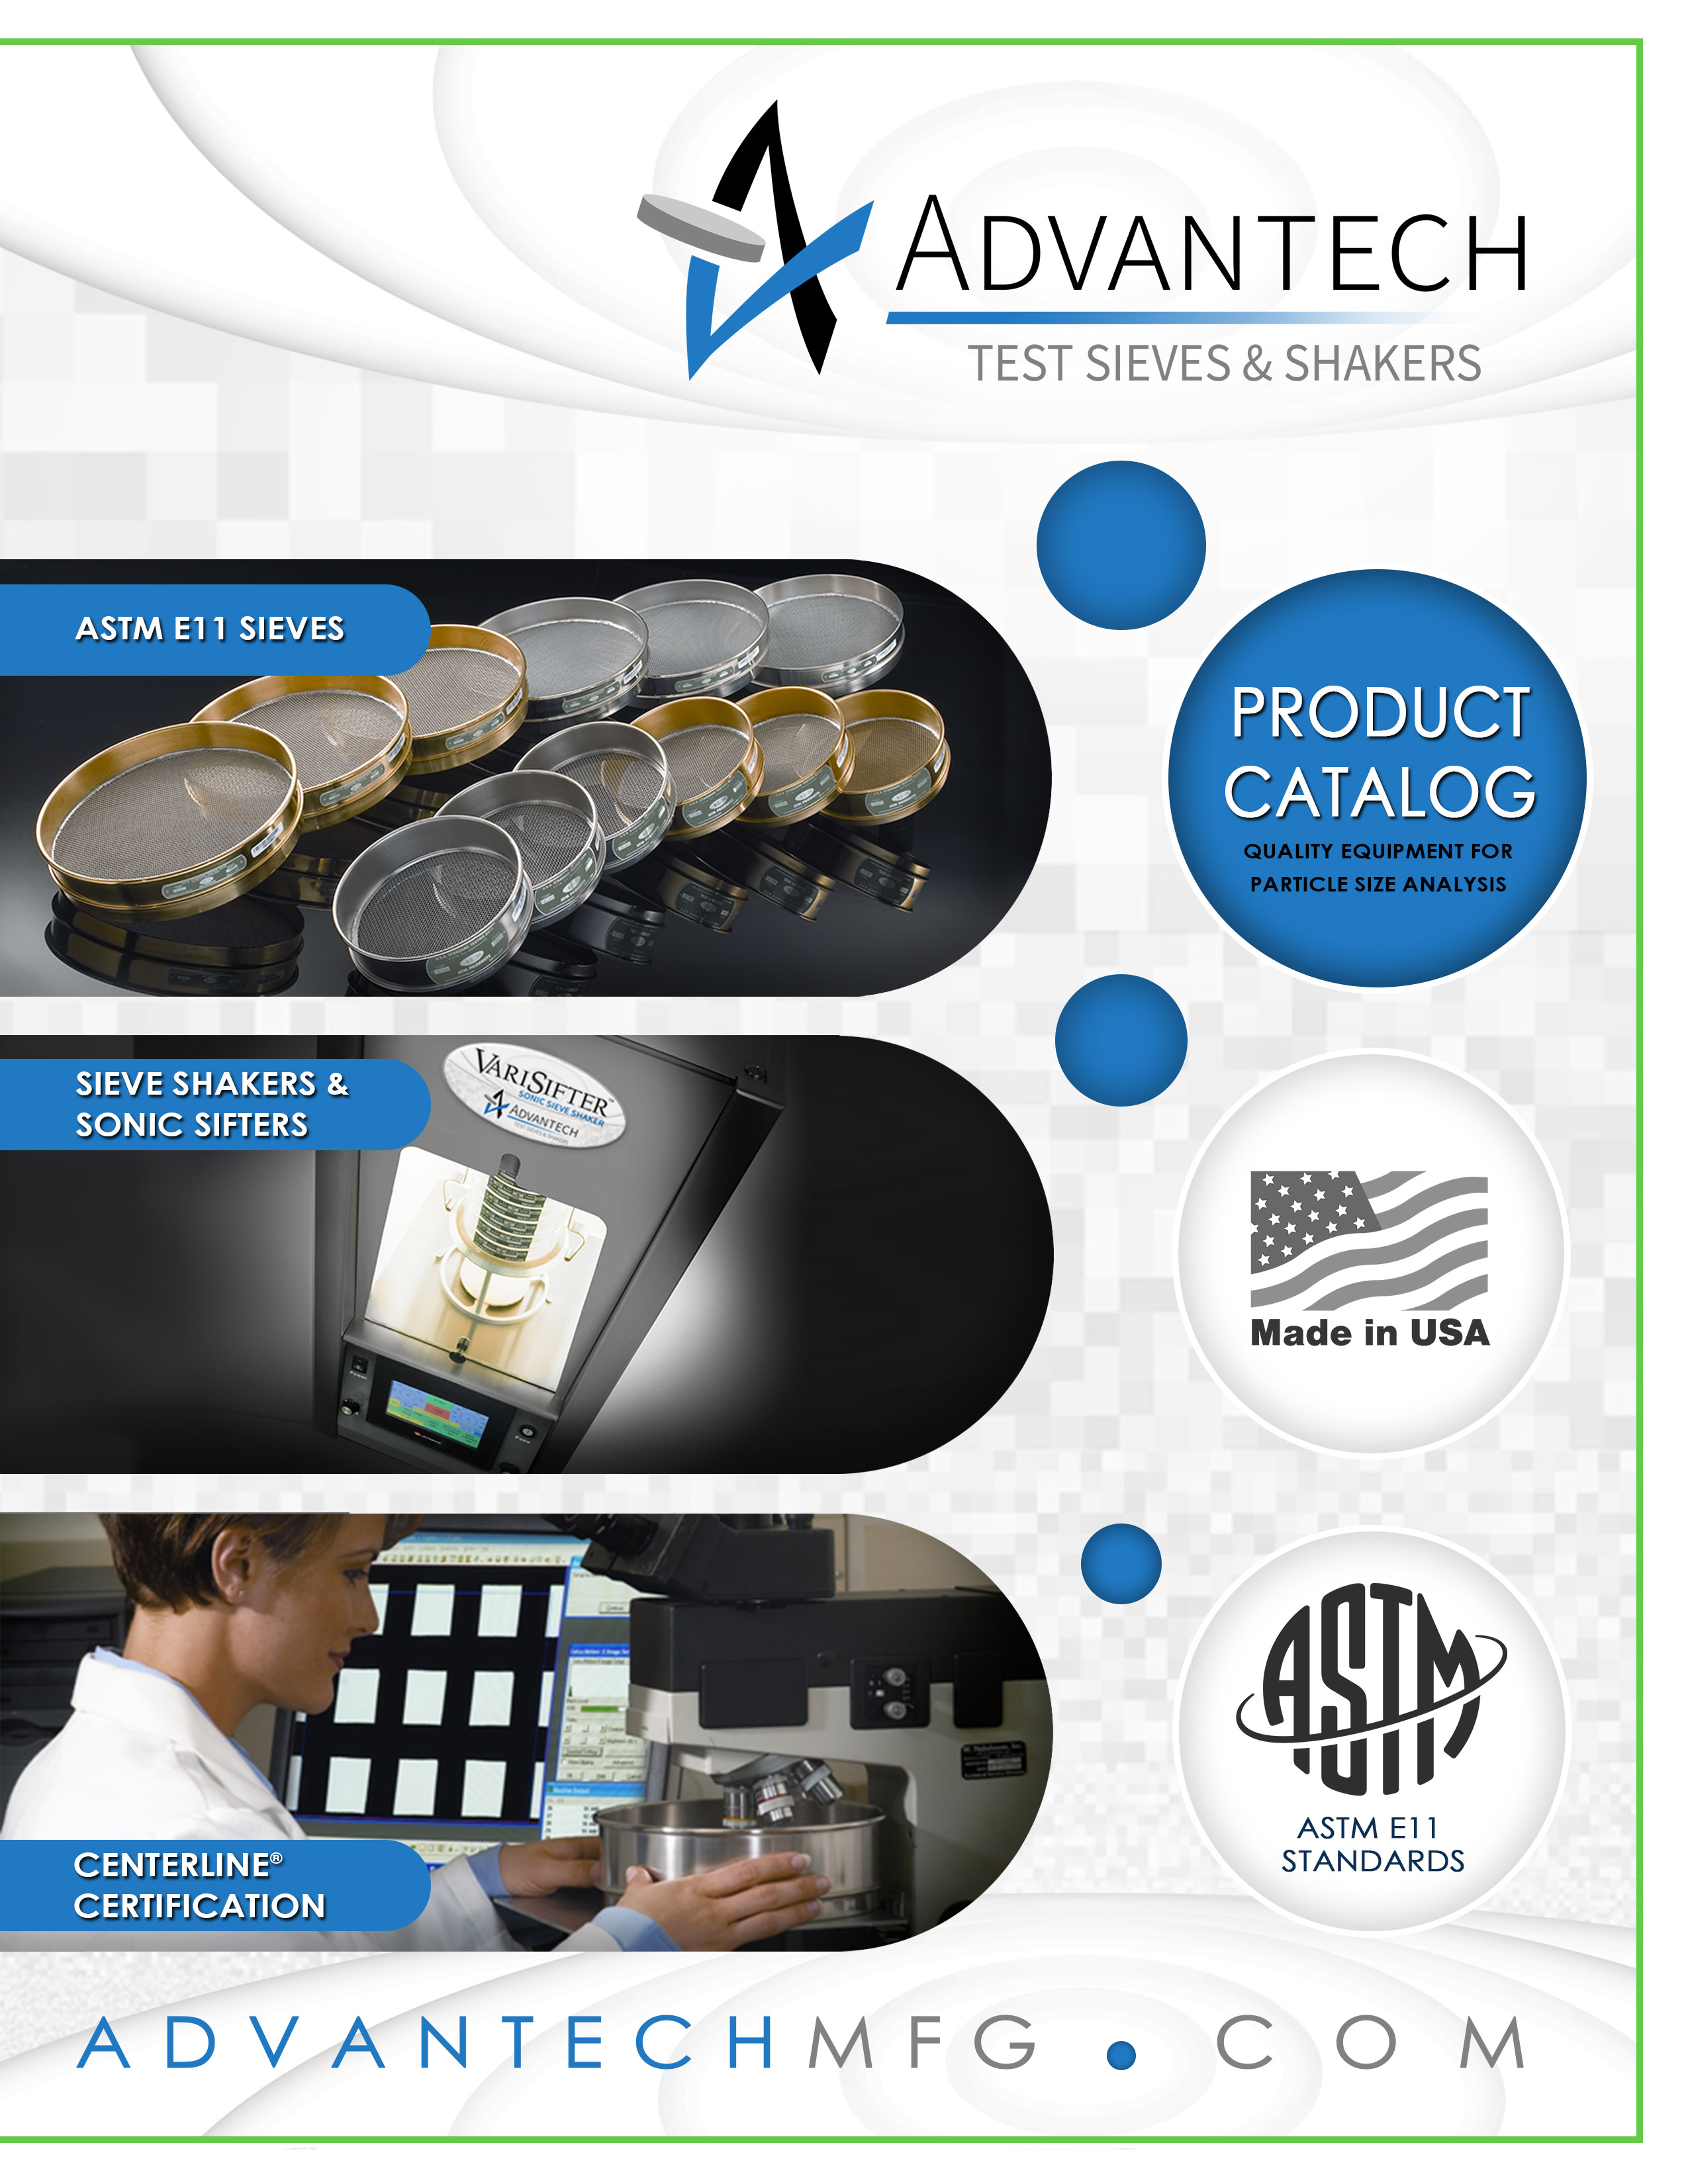 advantech-sieves-and-shakers-catalog-2020-page-01.jpg